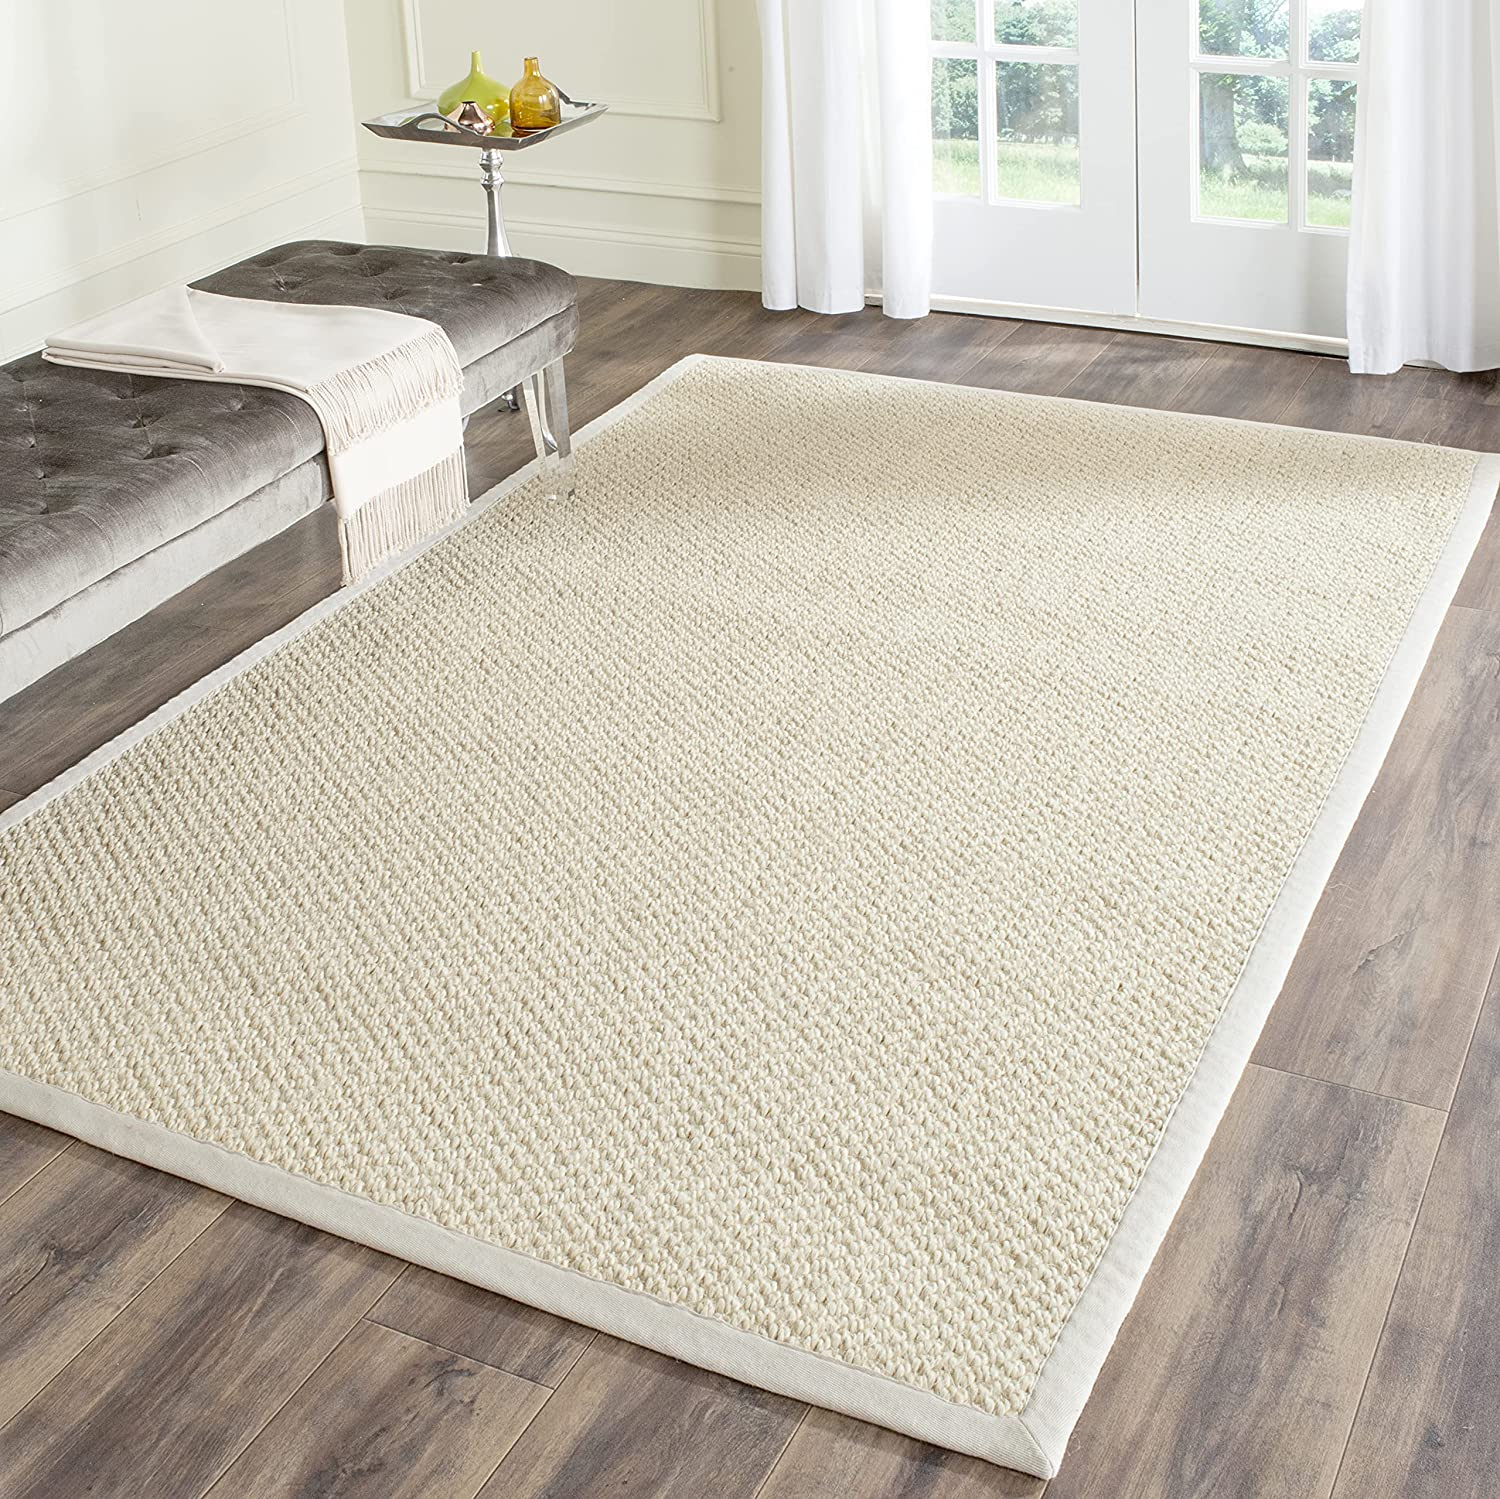 Safavieh Natural Fiber Collection NF525A Rug Sisal Raleigh Mall Shipping included Premium Area